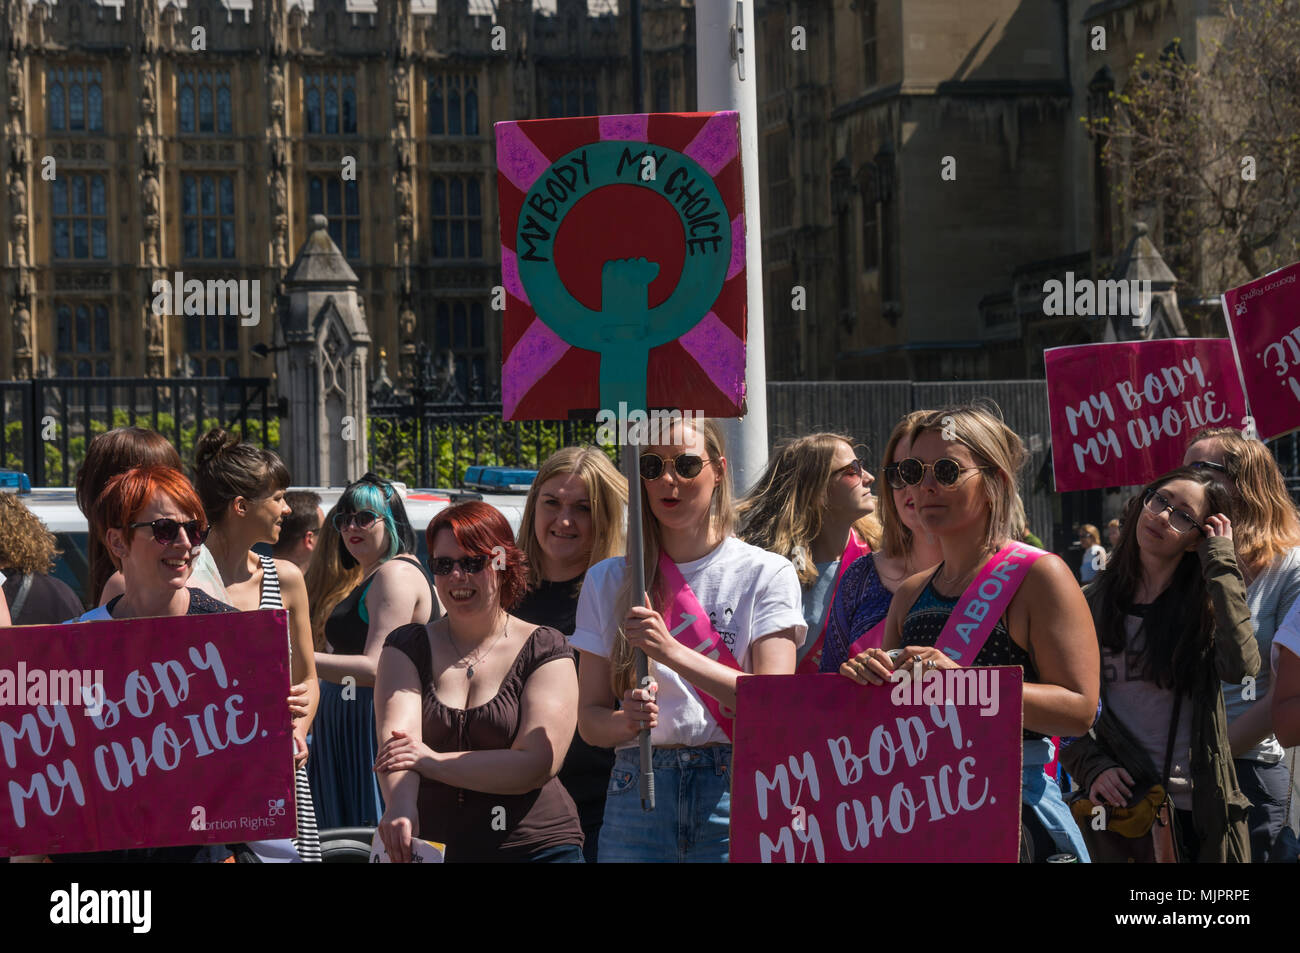 London, UK. 5th May 2018. Women in the abortion rights campaign hold posters and a placard 'My Body My Choice' at a rally in Parliament Square before the annual March for Life UK by pro-life anti-abortion campaigners was to march to a rally there. They insisted on the right for women to choose and opposed to any increase of restrictions which would lead to the problems we saw before the 1967 Abortion Act, when women risked their lives in back street abortions. They called for women in Northern Ireland to be given the same rights as in the rest of the UK and for an end of the harassment of wome - Stock Image